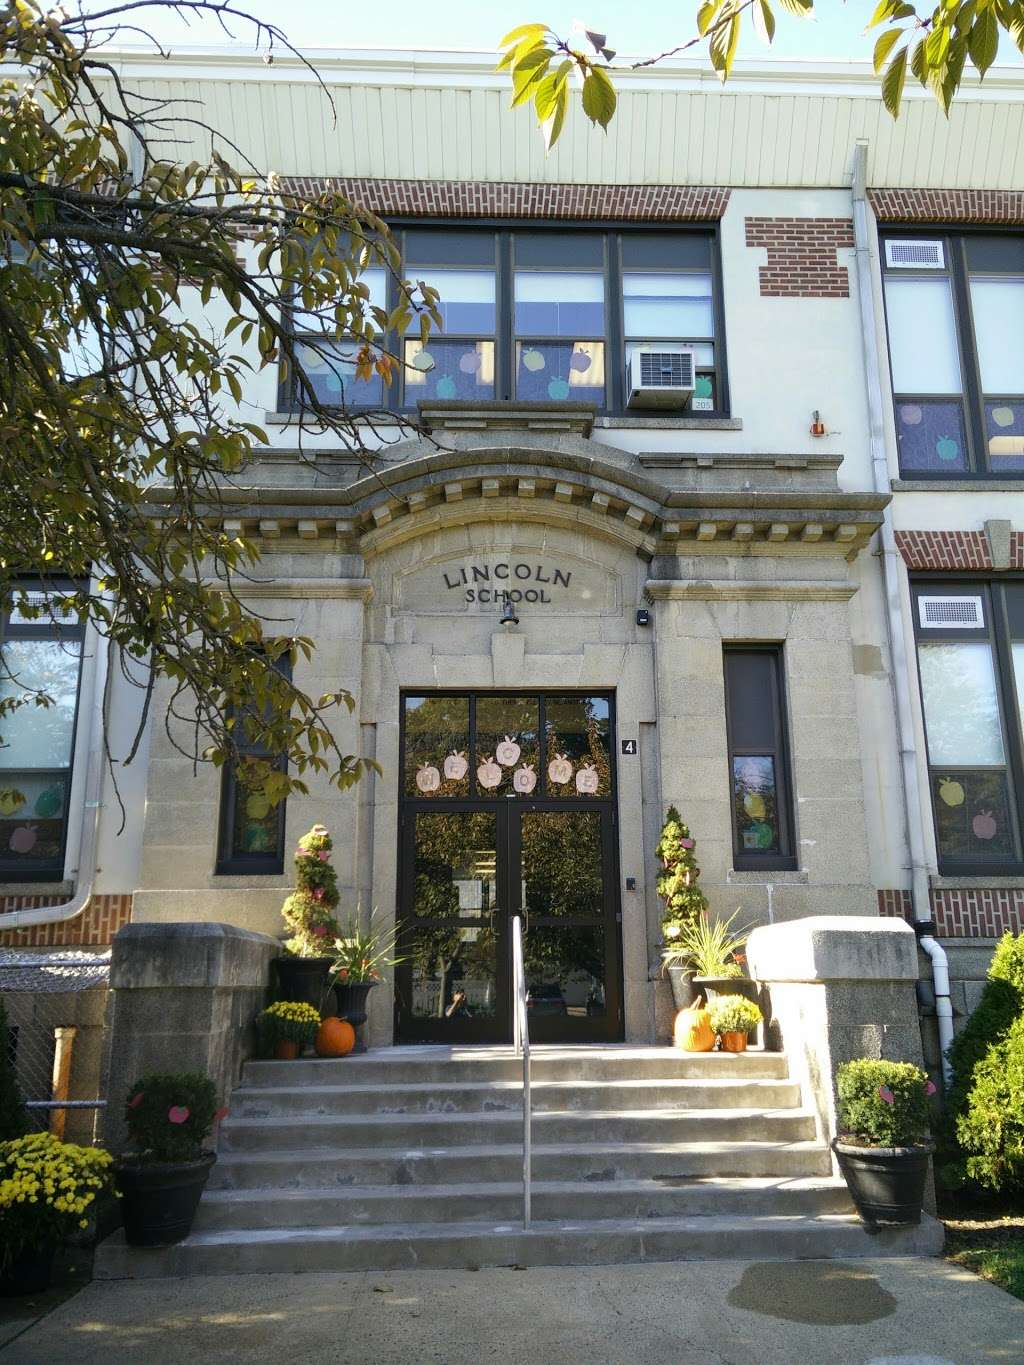 Lincoln School - school  | Photo 1 of 1 | Address: 414 Montross Ave, Rutherford, NJ 07070, USA | Phone: (201) 438-7675